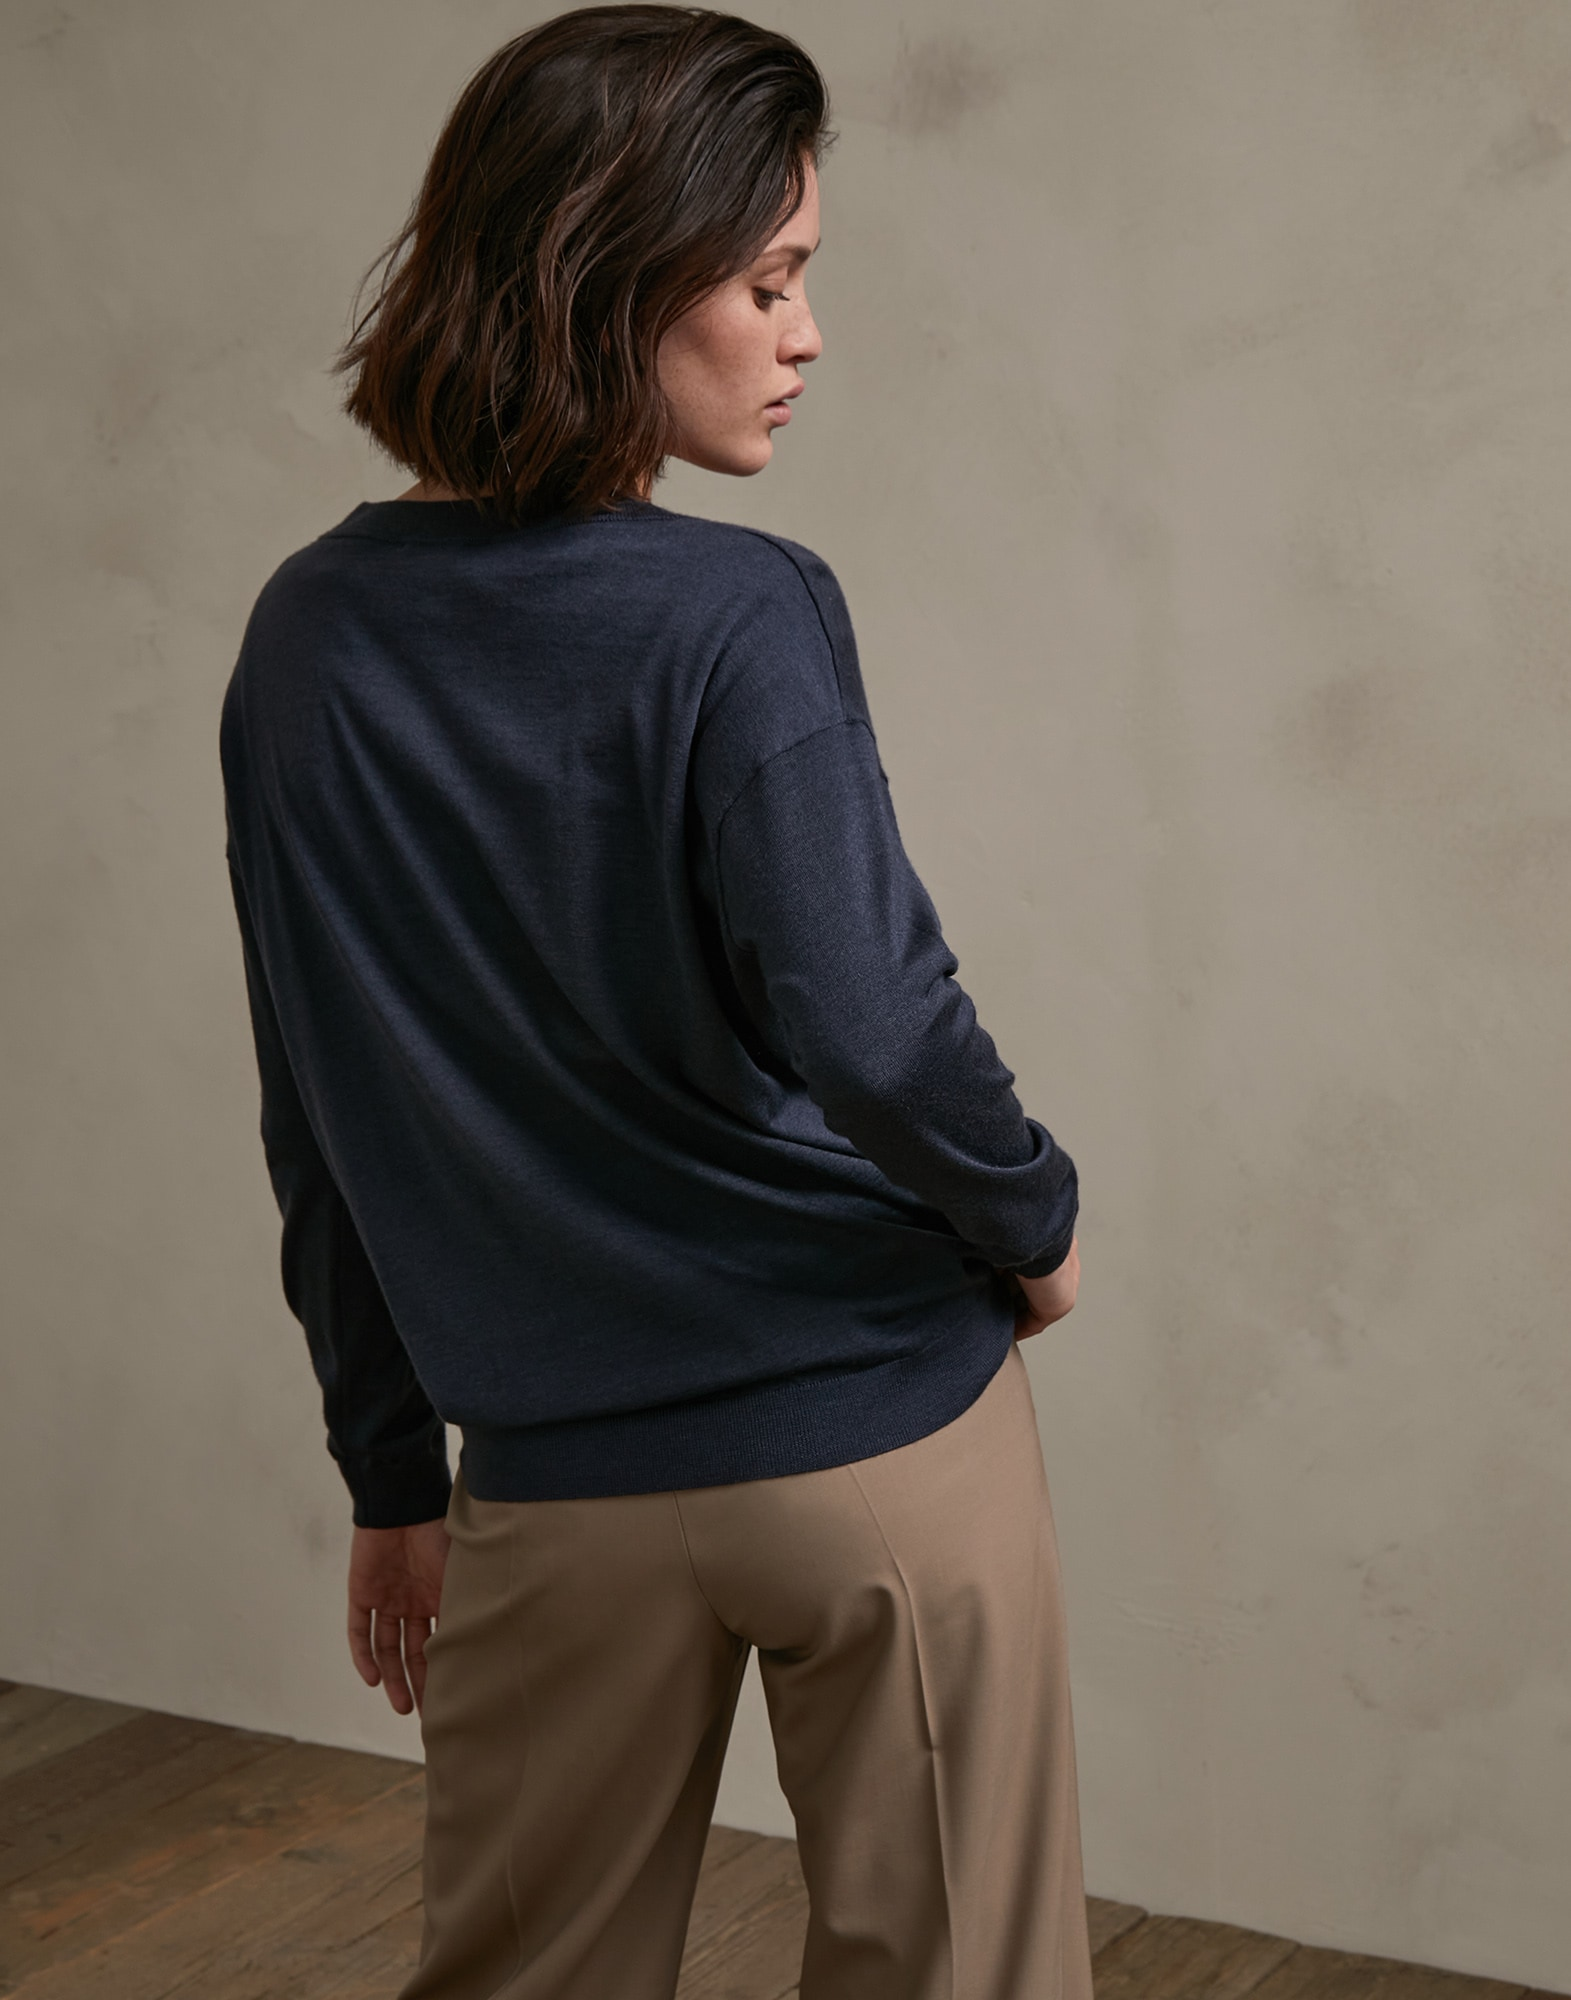 V-neck Sweater - Back view